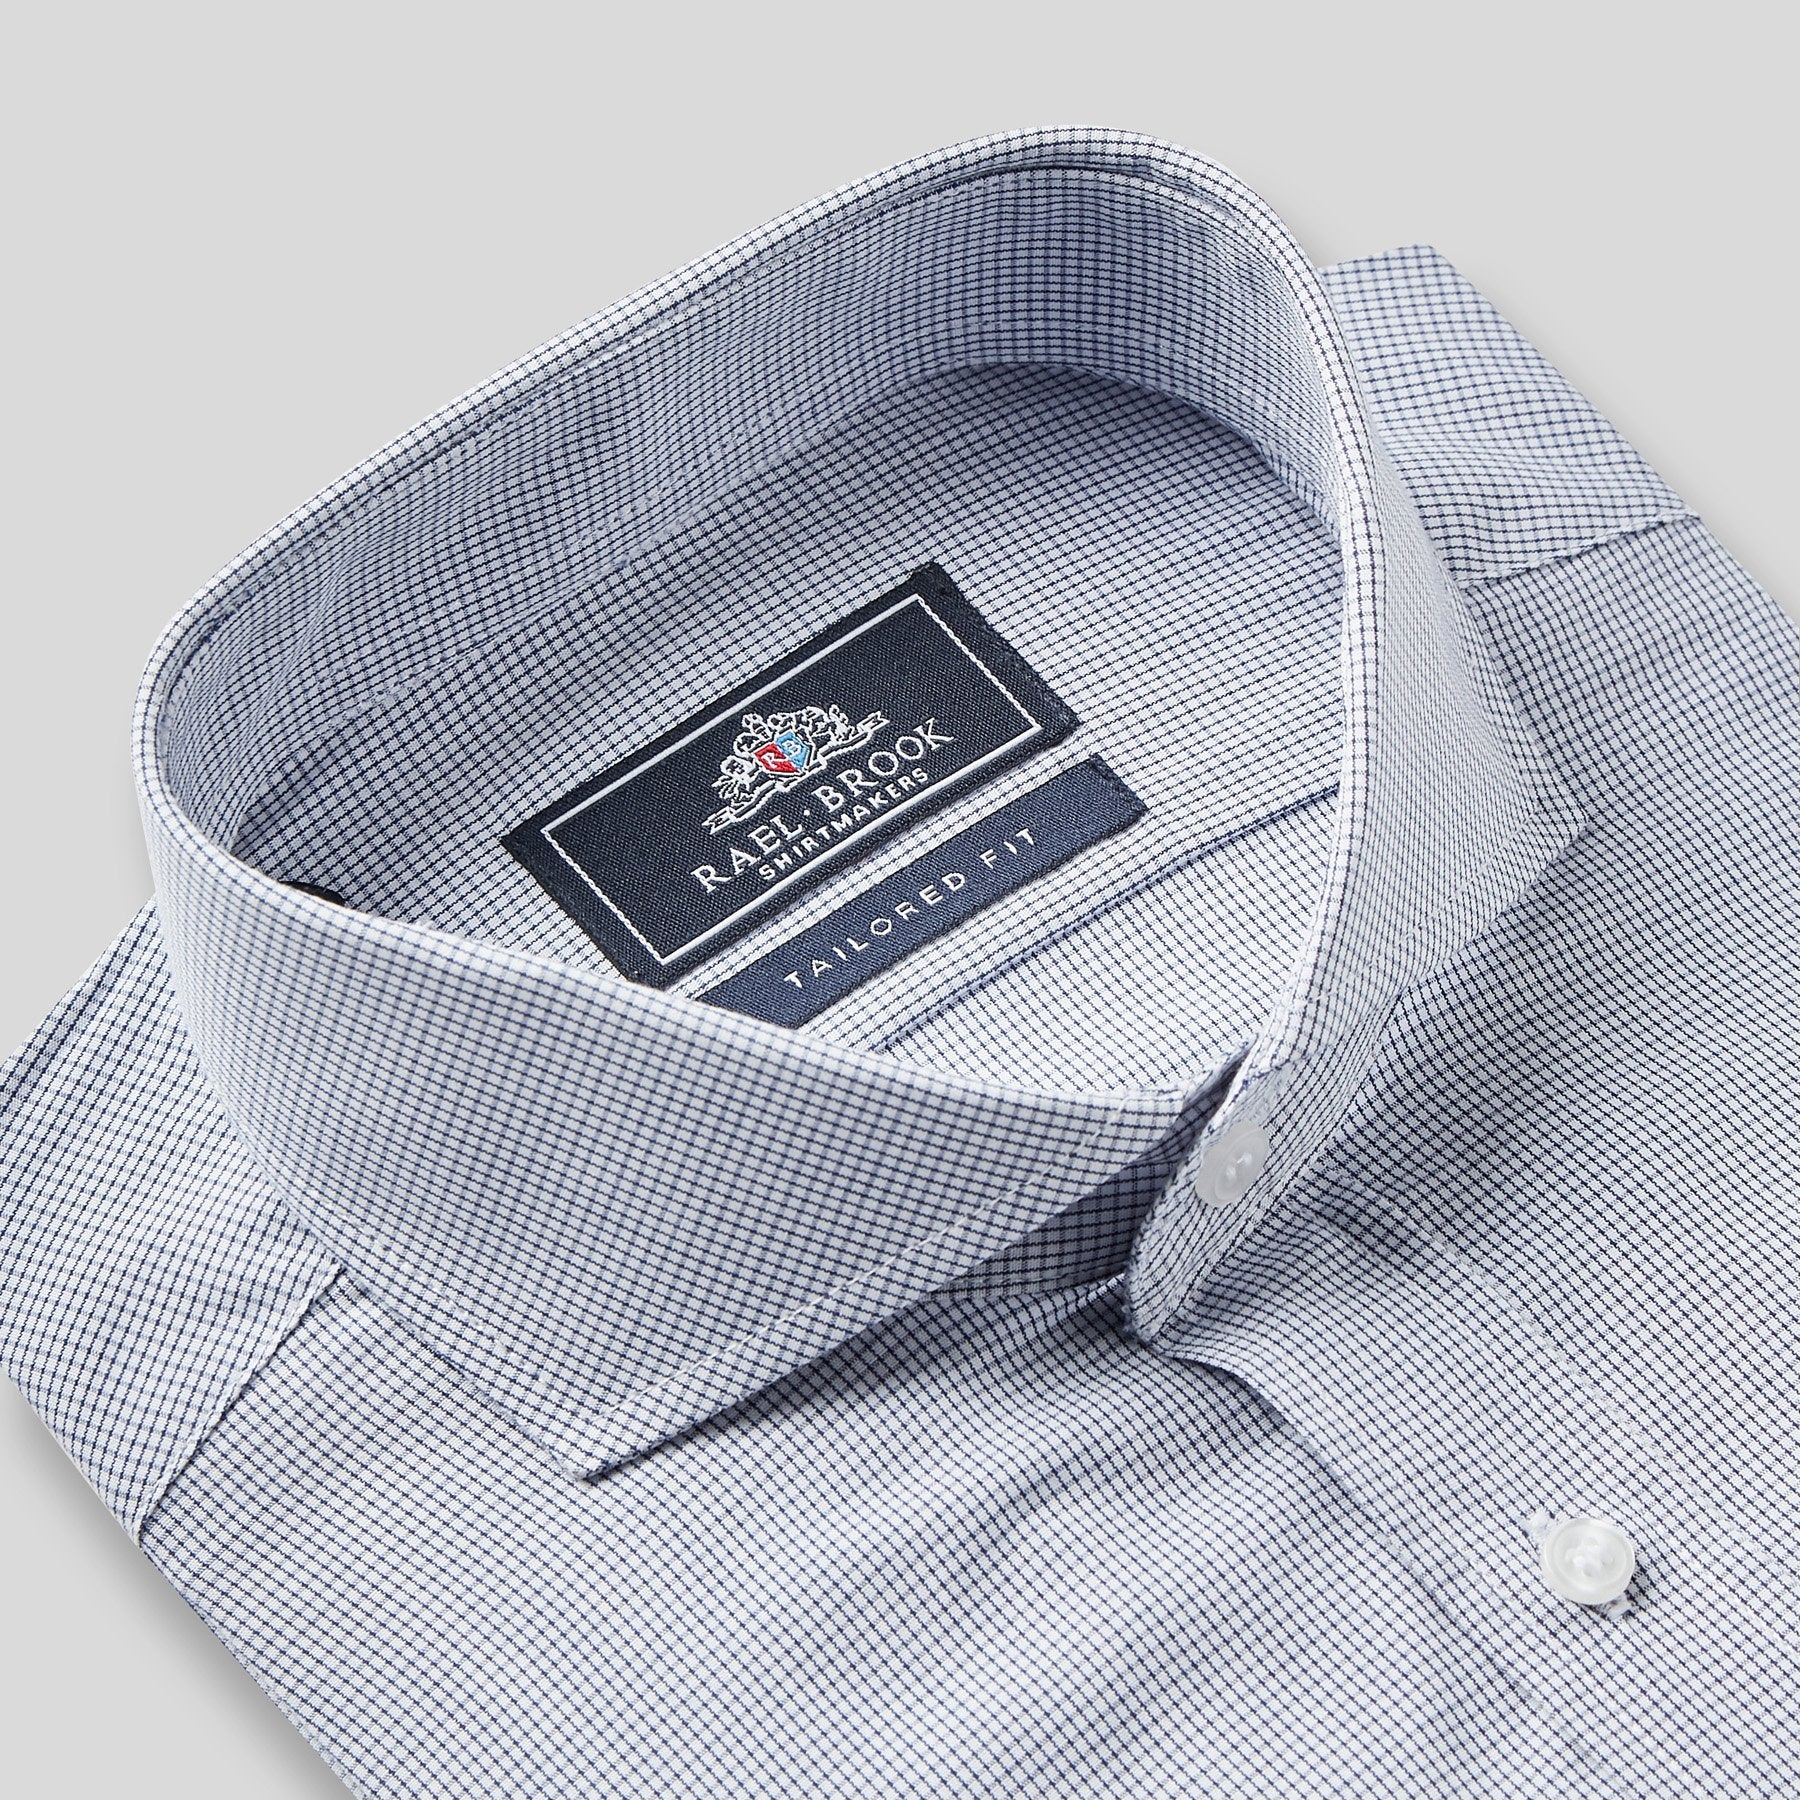 4832-Rael-Brook-Tailored-Fit-Navy-Fine-Check-Single-Cuff-Shirt-2